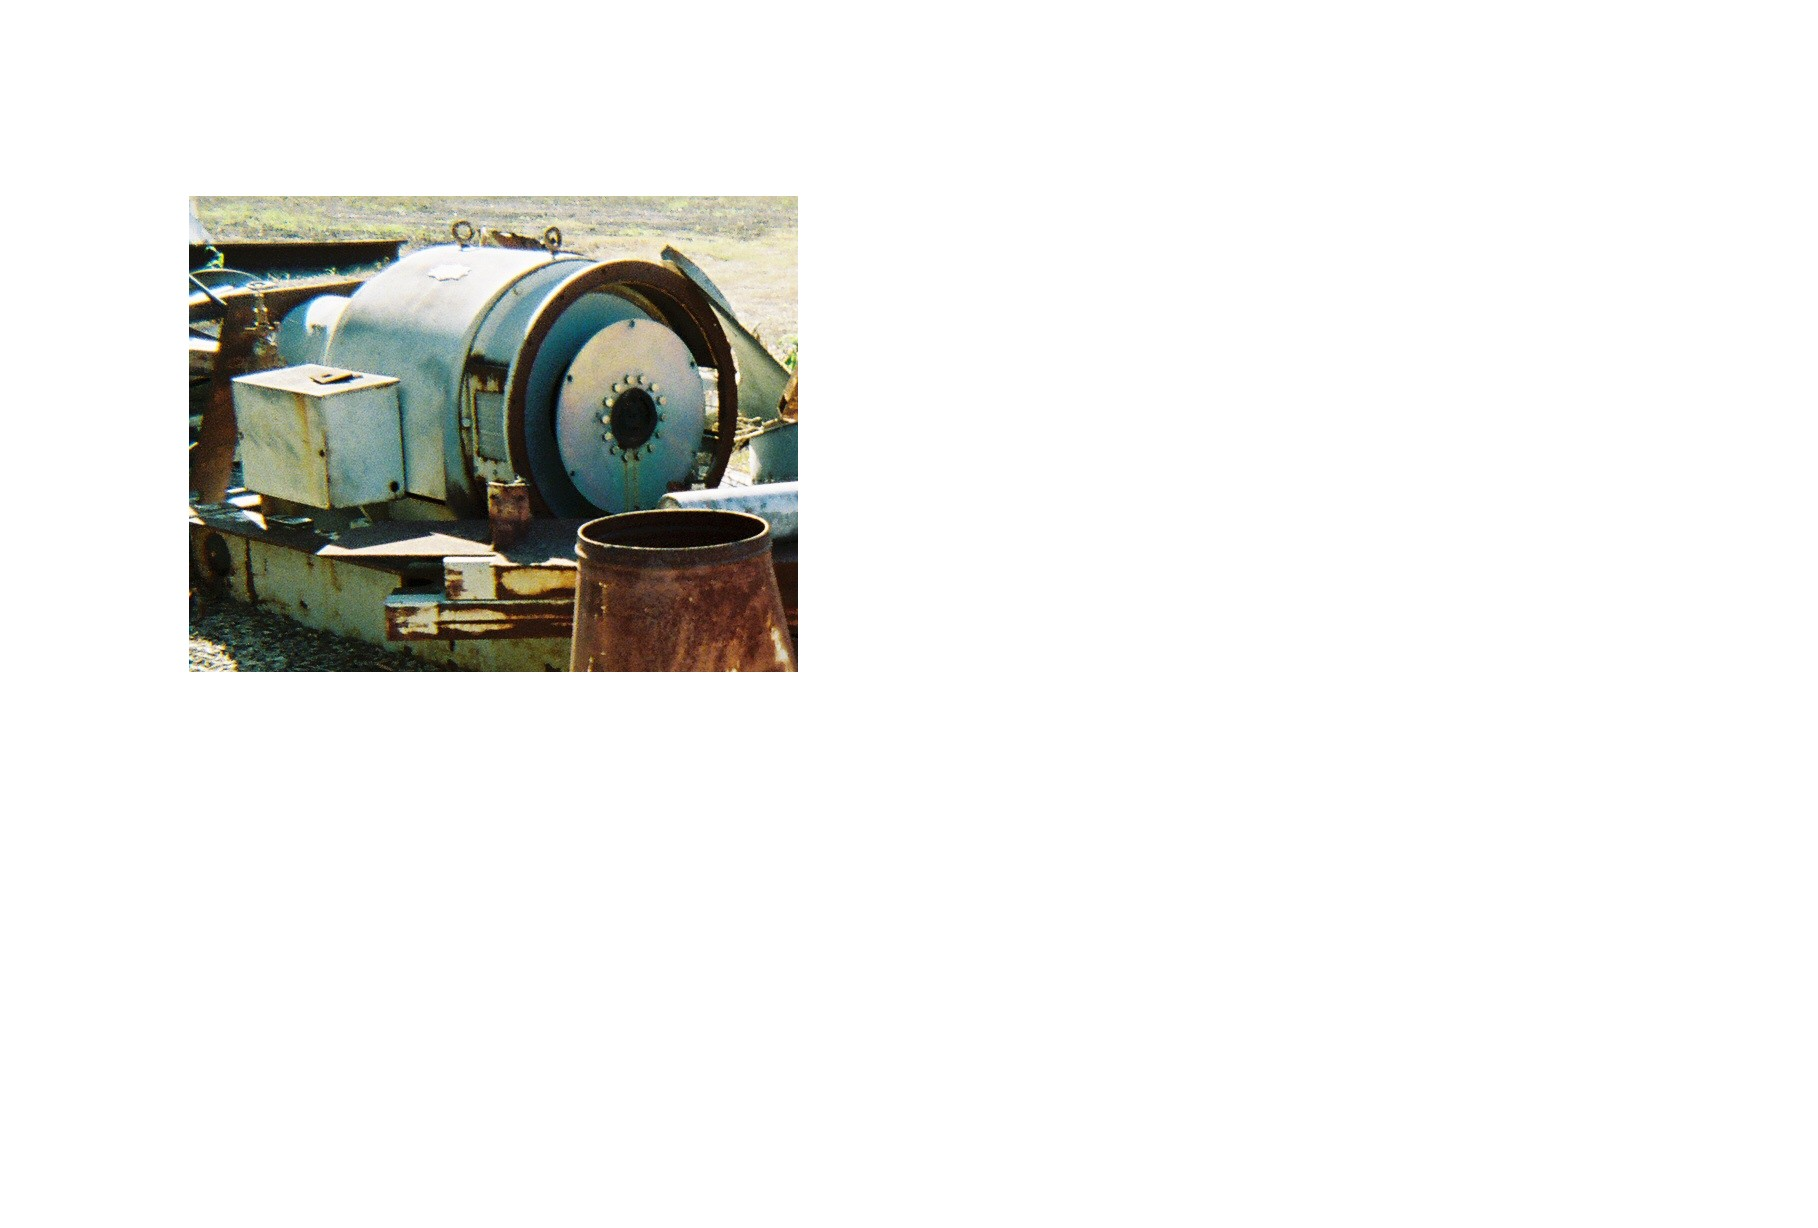 Electric Machinery 250 kW Synchronous Generator